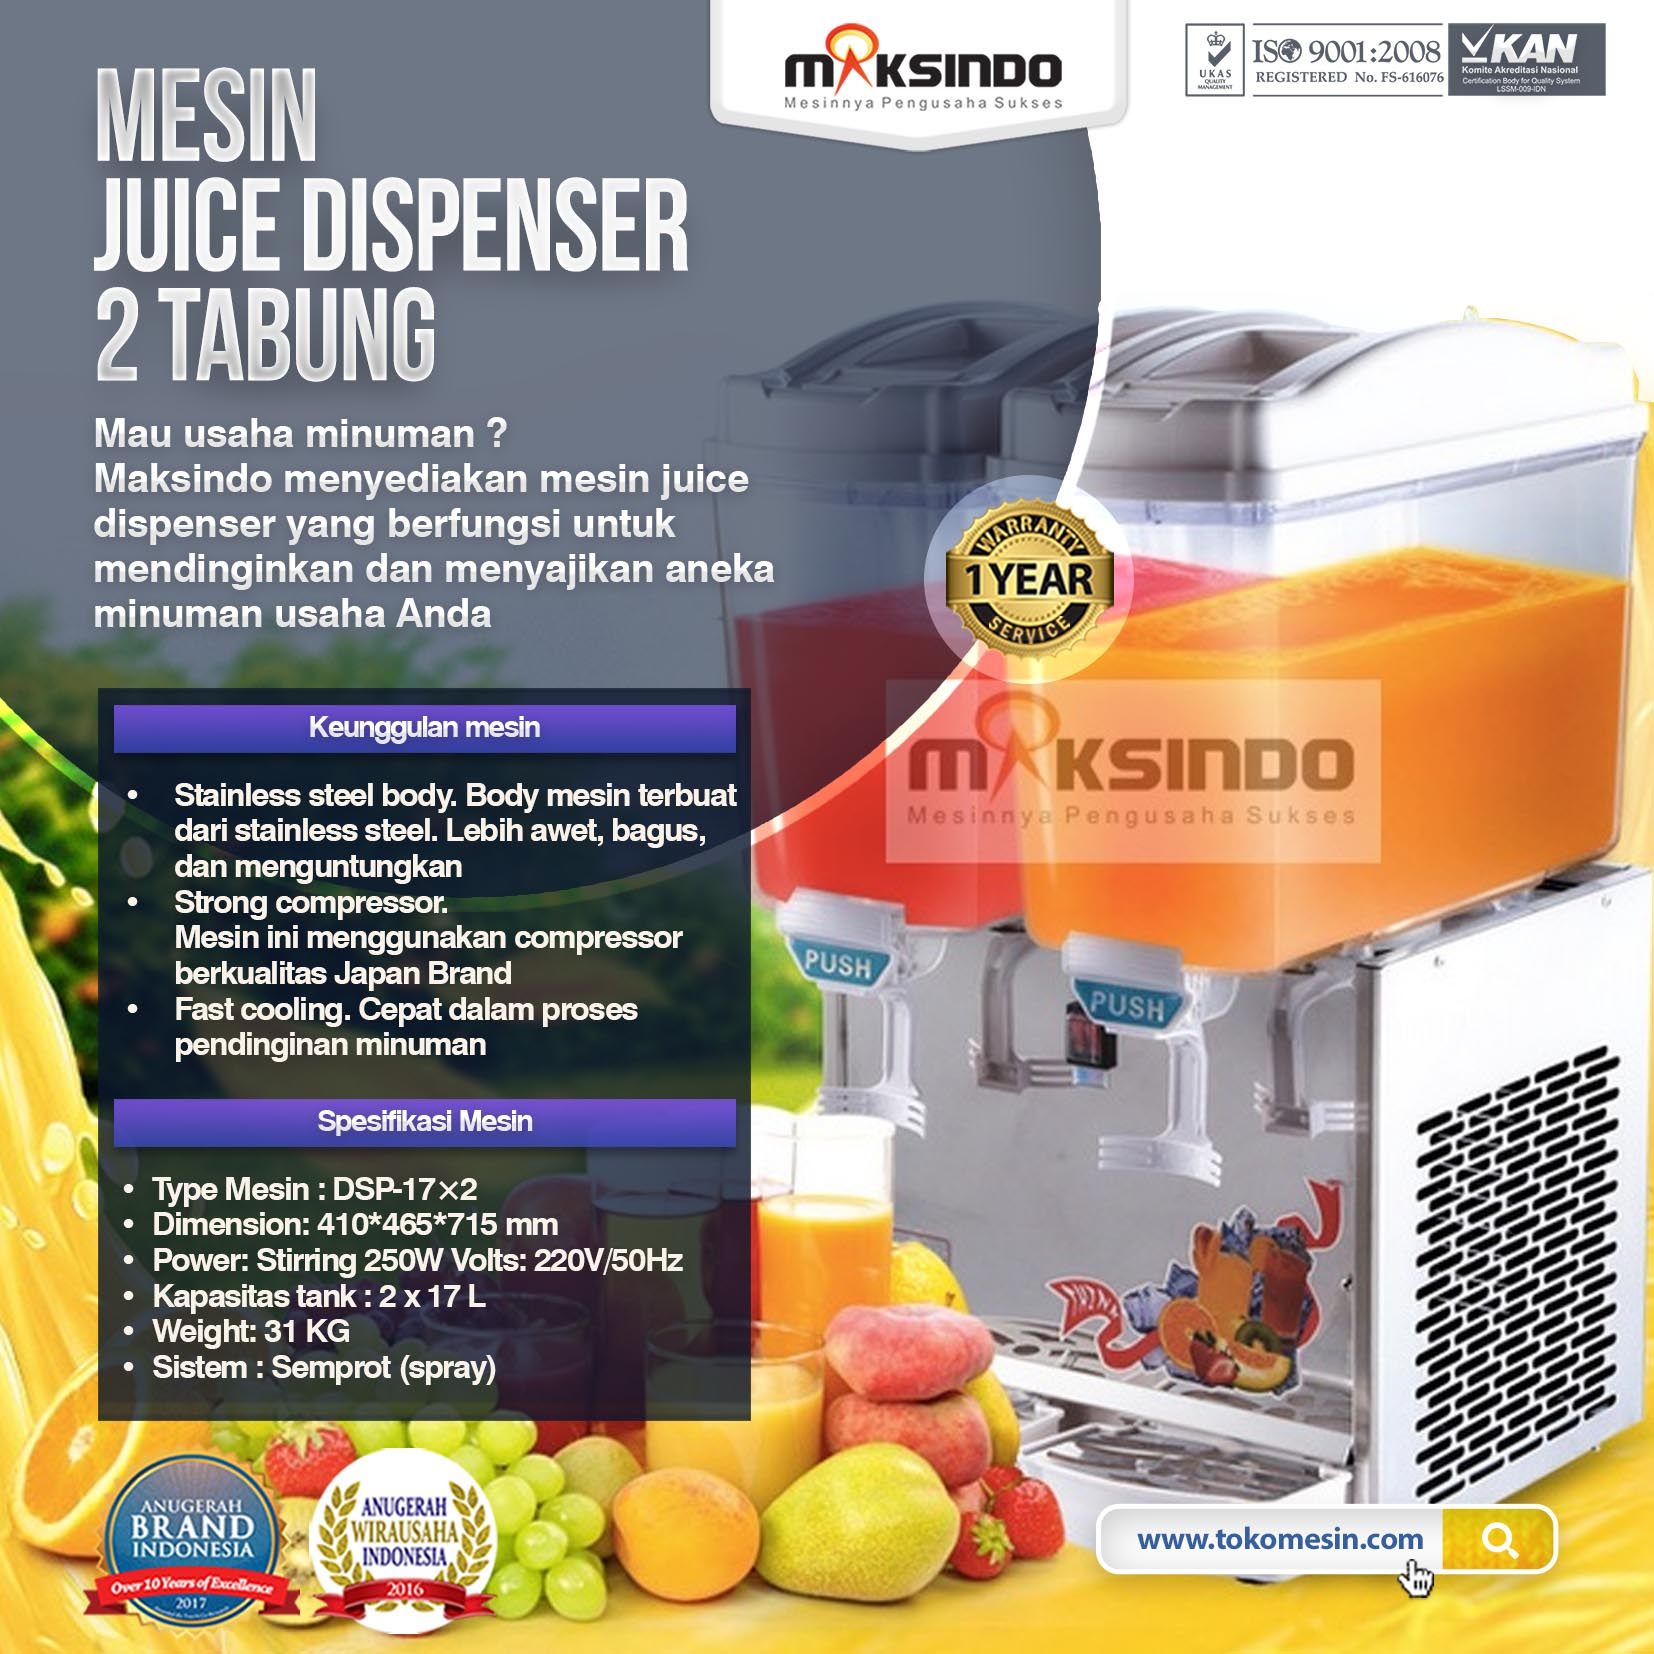 mesin DISPENSER 2 TABUNG 1